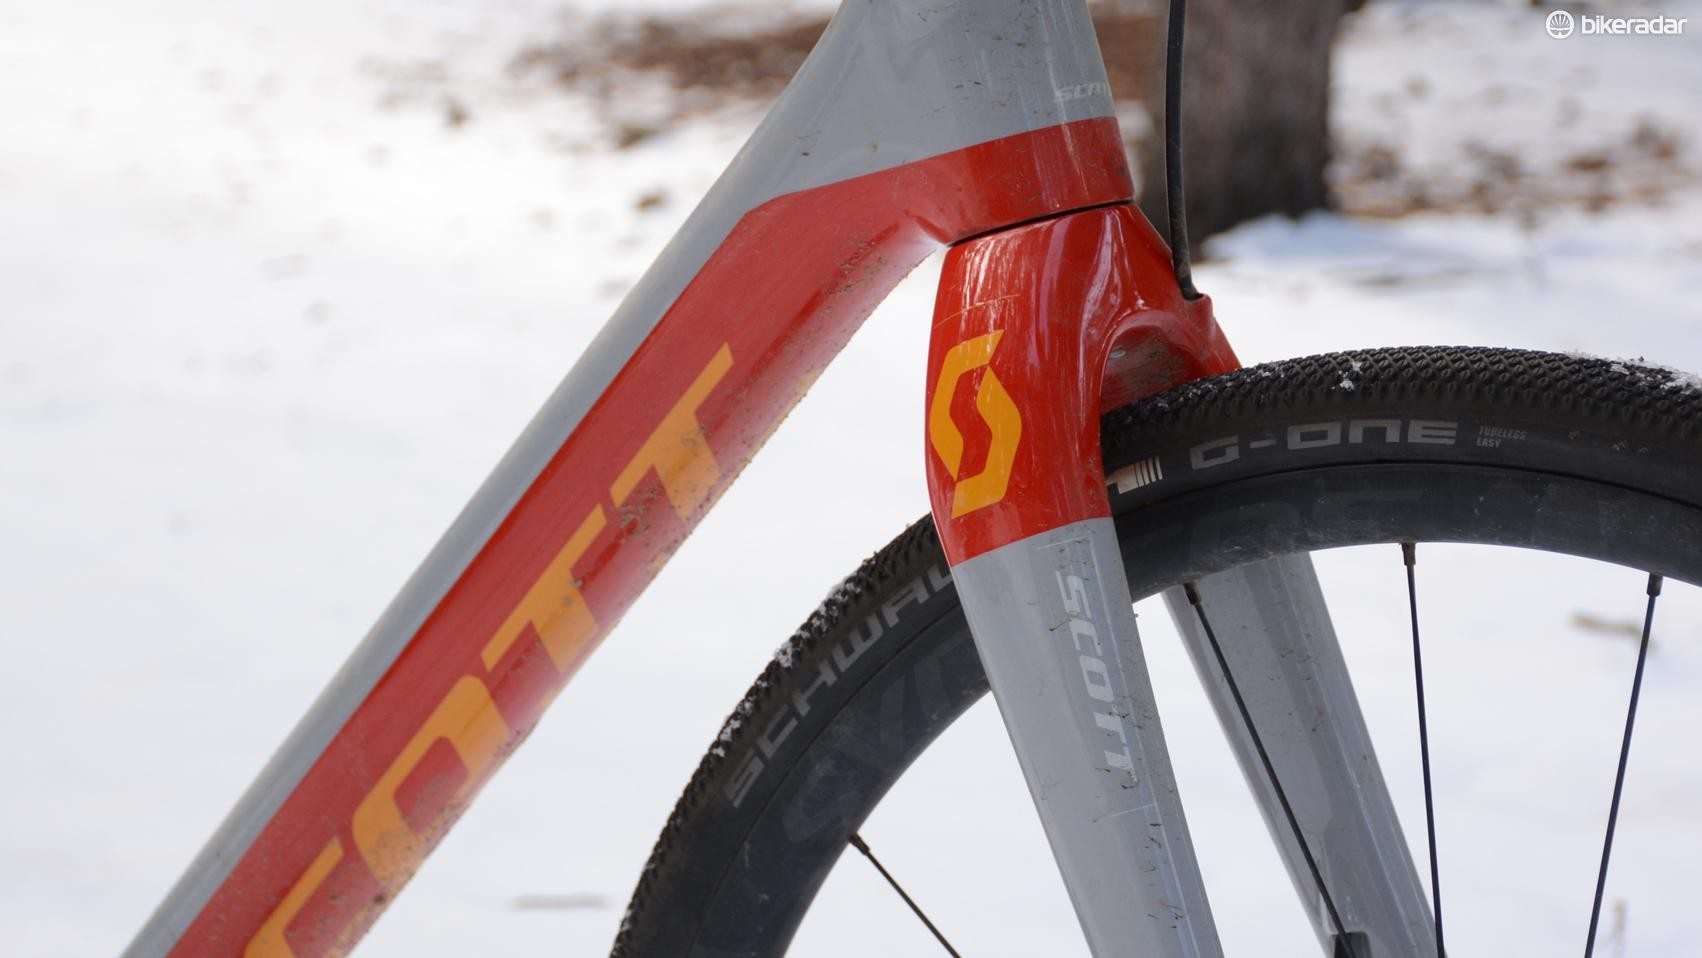 As with the rest of the carbon frame, the fork is light, stiff and precise